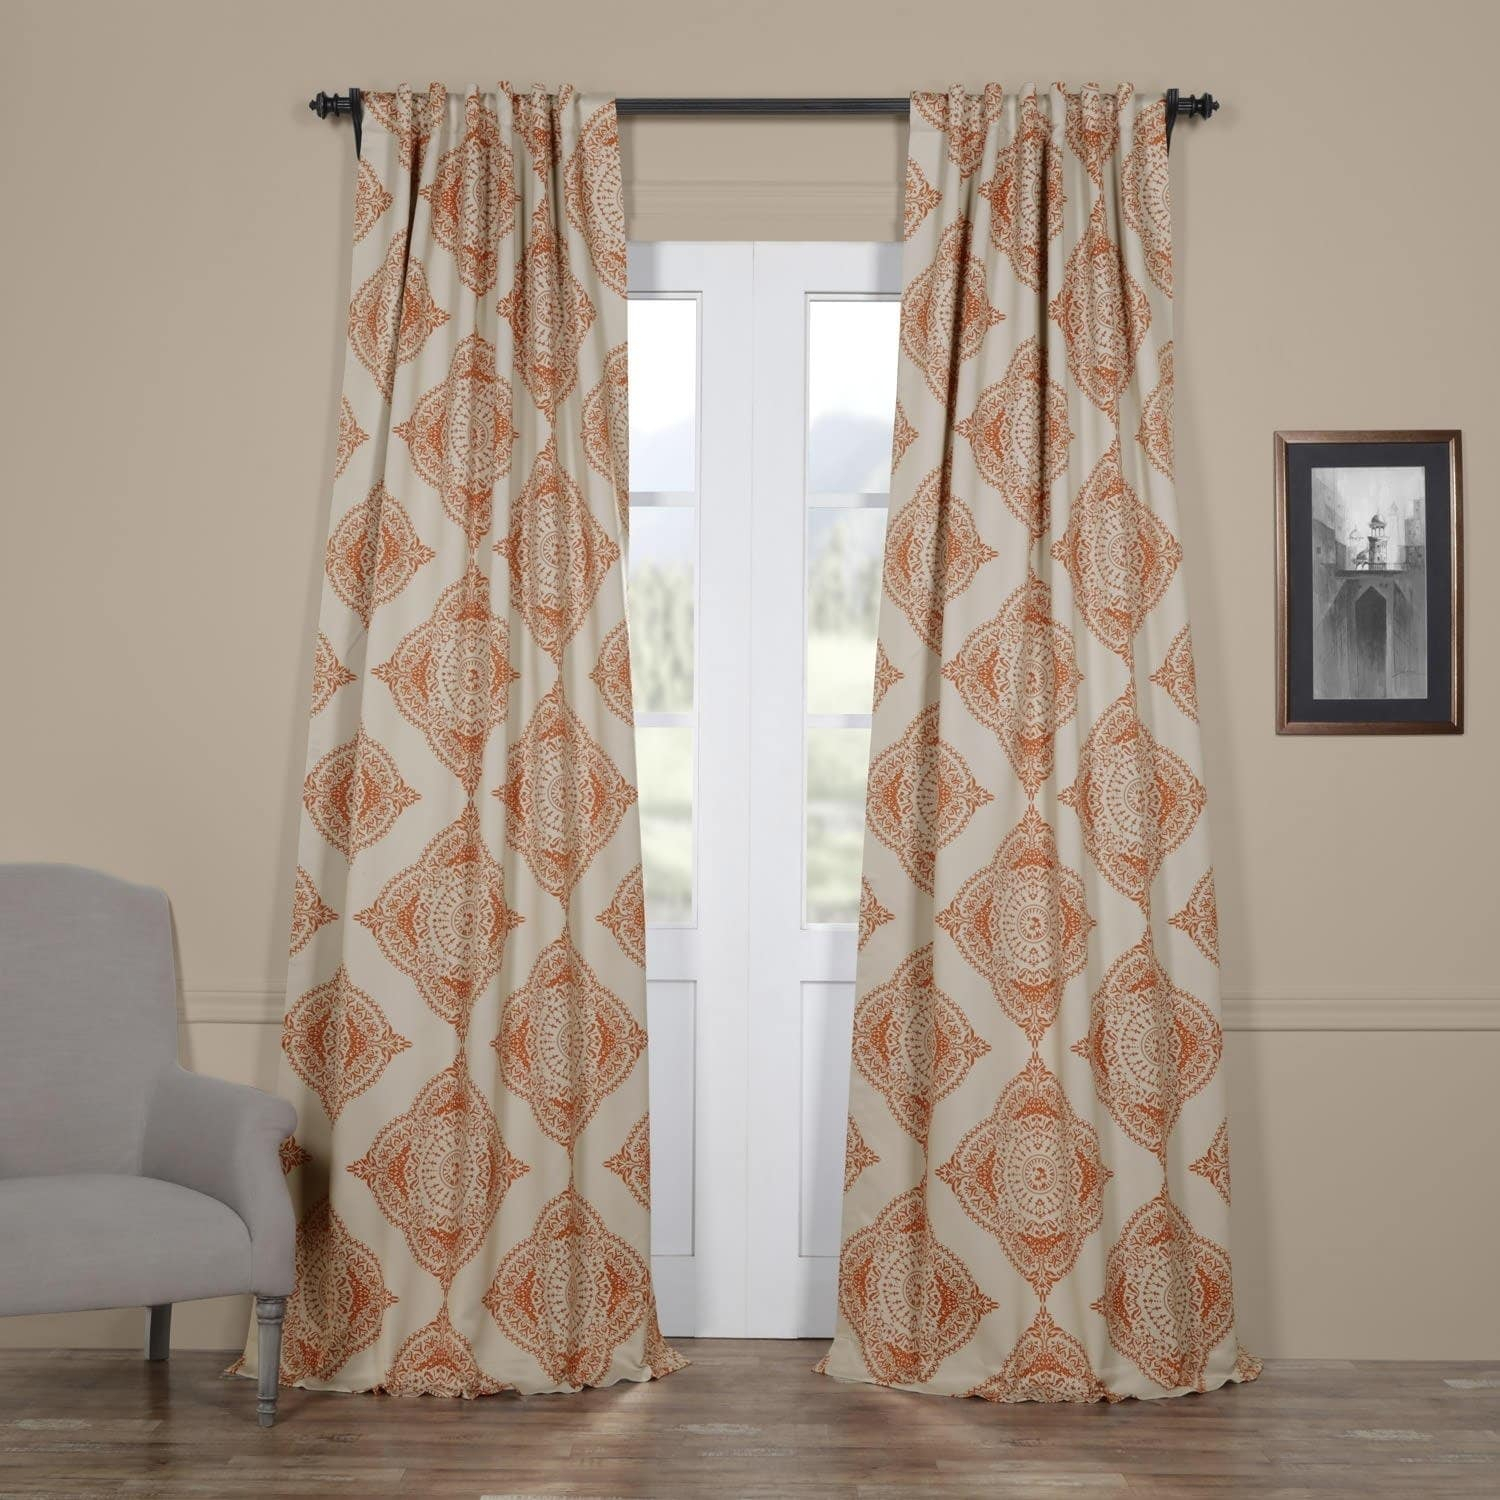 Exclusive Fabrics Moroccan Style Thermal Insulated Blackout Pertaining To Solid Insulated Thermal Blackout Curtain Panel Pairs (View 13 of 30)